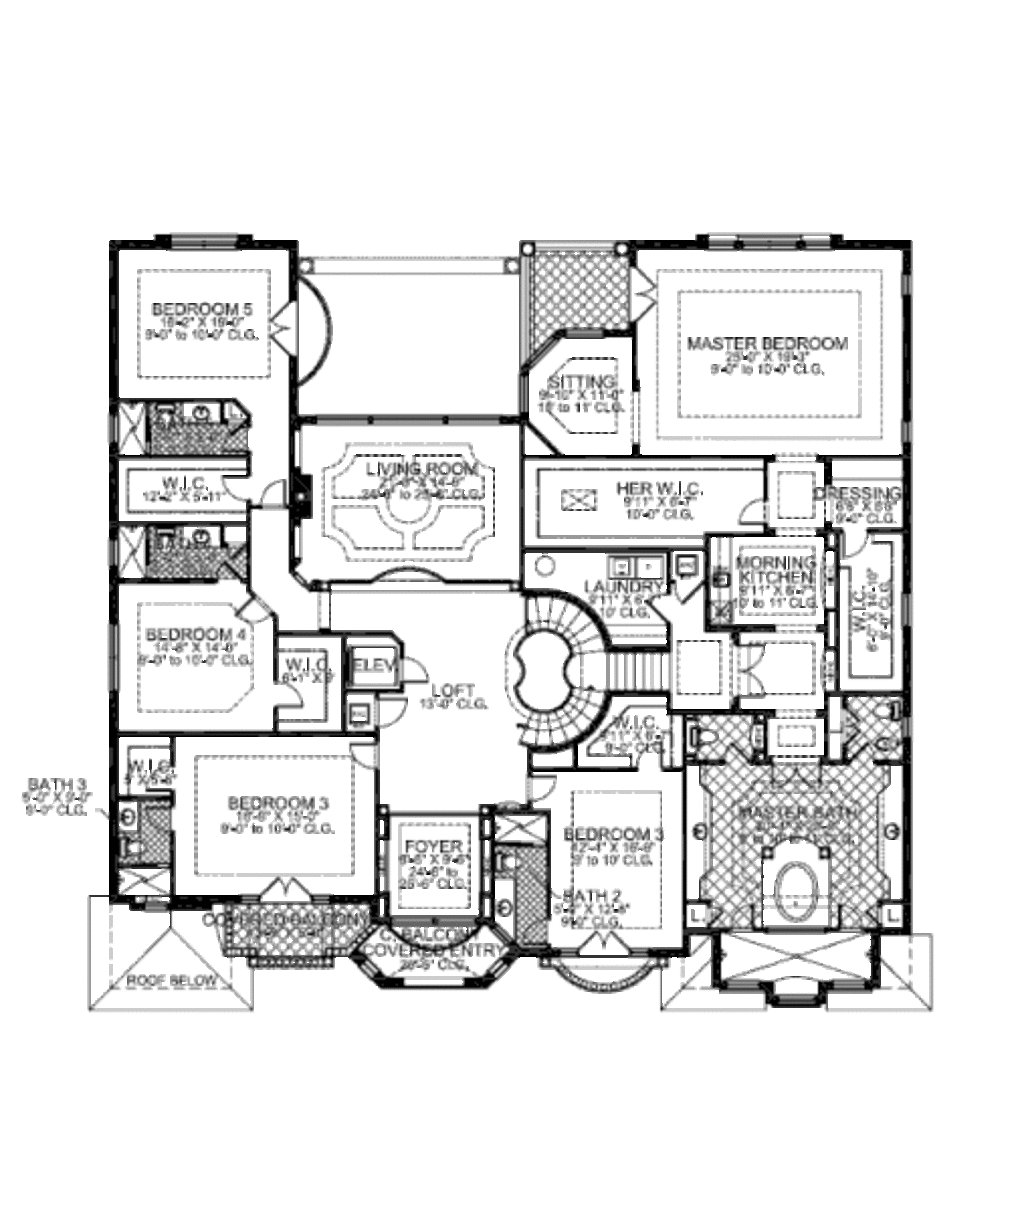 Best Mediterranean Style House Plan 7 Beds 8 50 Baths 7883 Sq With Pictures